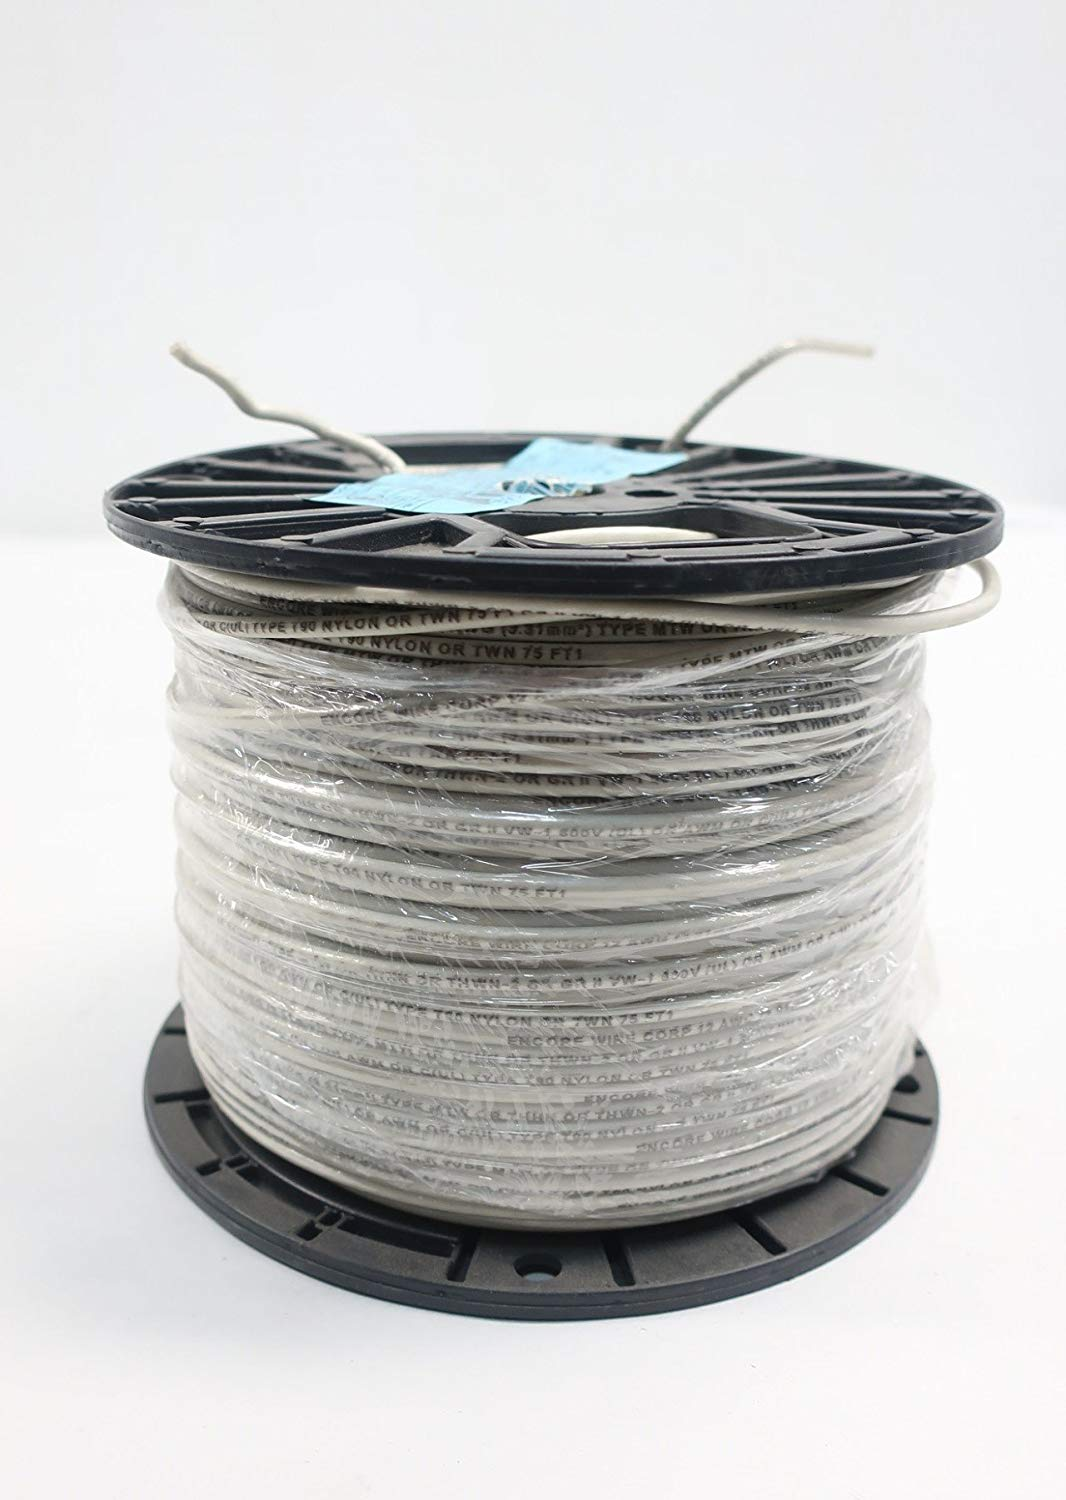 ENCORE WIRE 106100802440, 12AWGTHHN 600V-AC Cable 500FT D609764